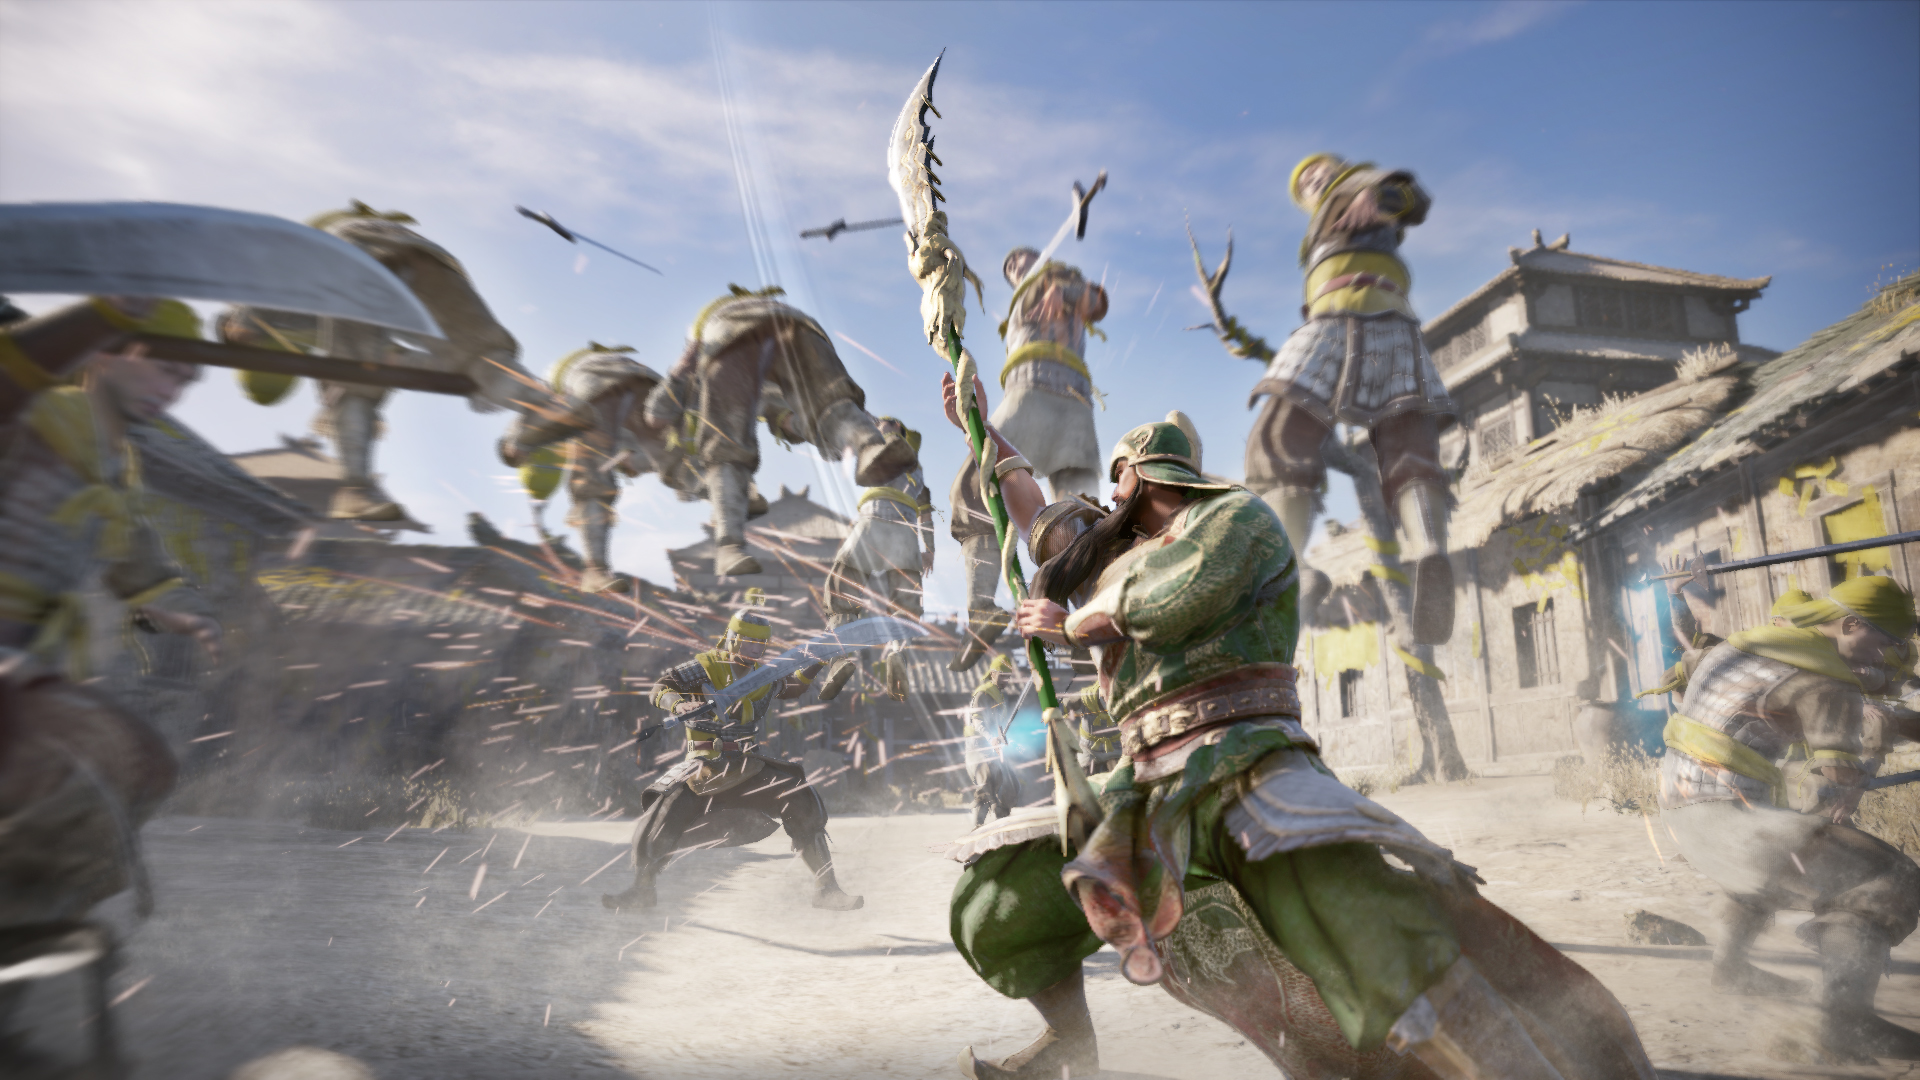 Top 5 games coming to Xbox One next week include Kingdom Come: Deliverance and Dynasty Warriors 9 3